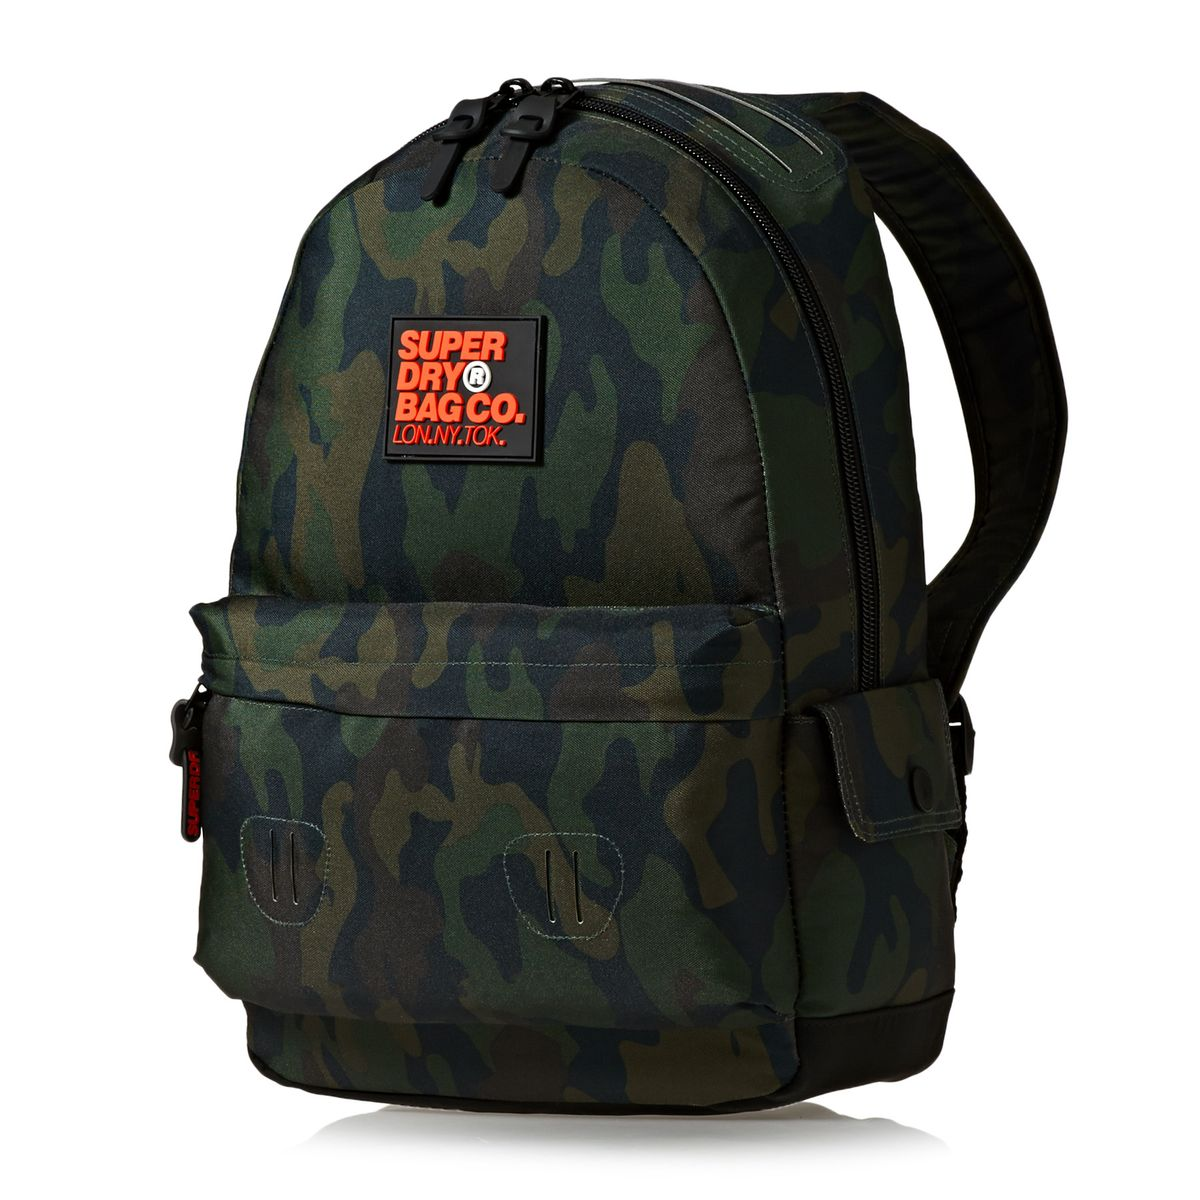 superdry-backpacks-superdry-camo-montana-backpack-black-camo